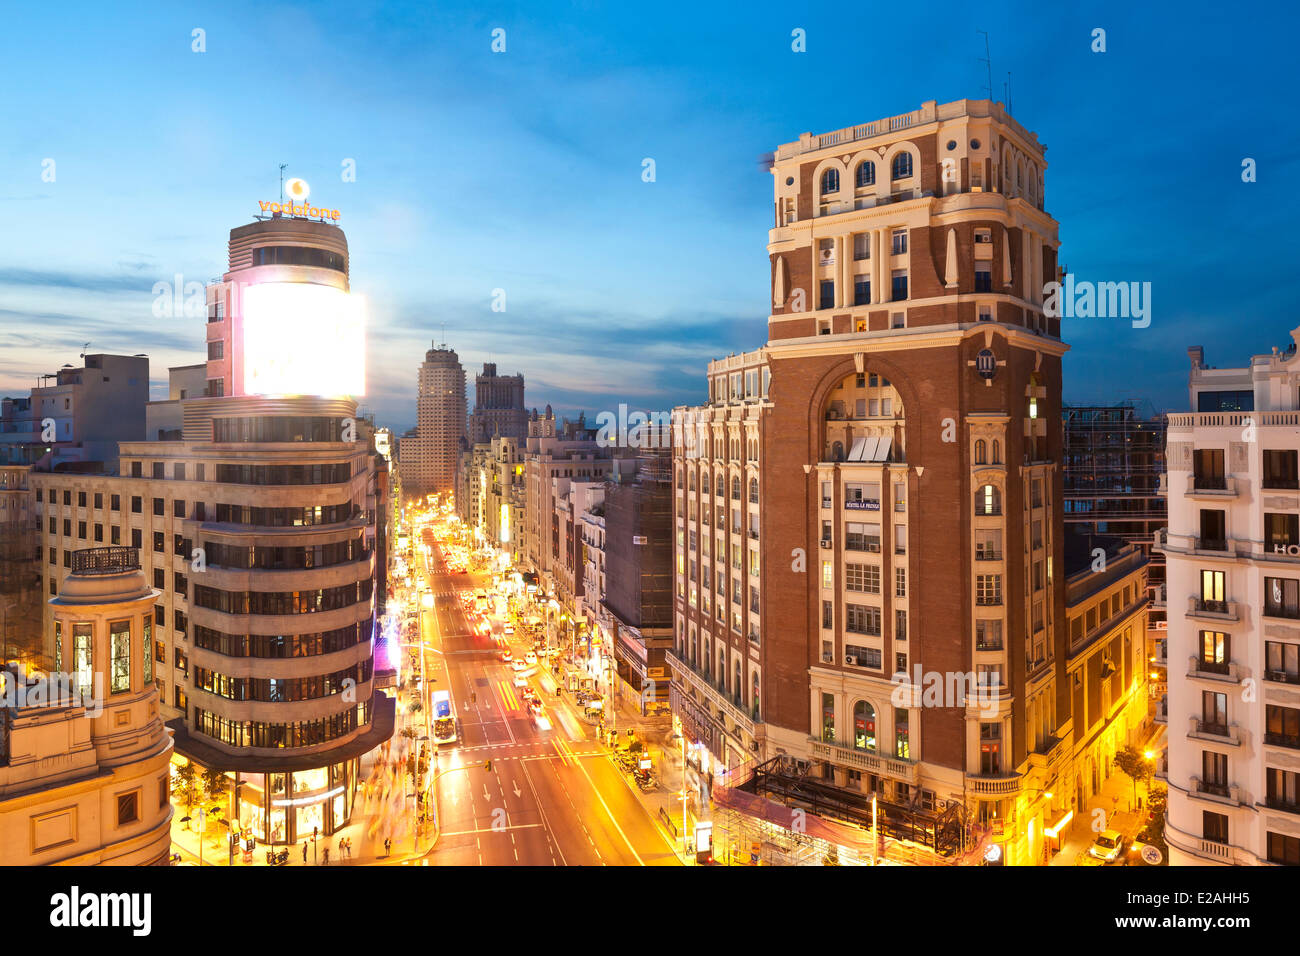 Spain, Madrid, Gran Via view with Carrion edifice on left designed by architects Luis Martinez-Vicente and Feduchi - Stock Image